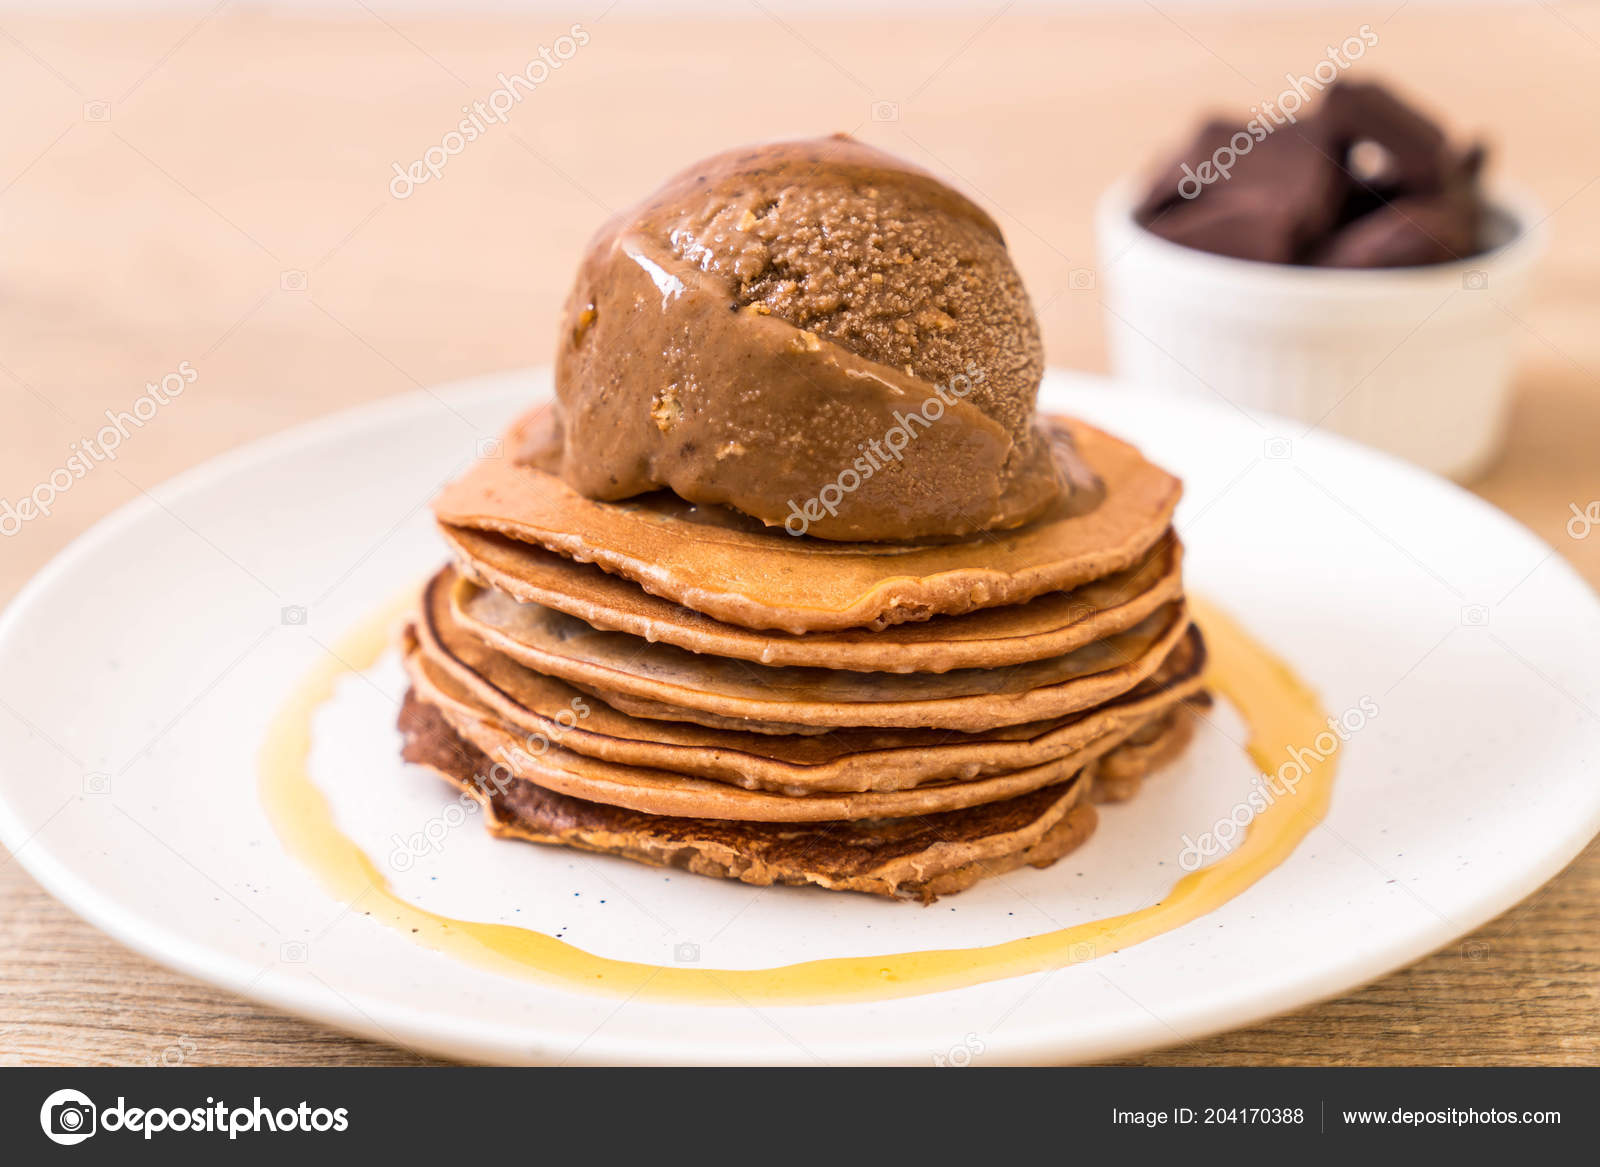 Pancake Chocolate Ice Cream Plate Stock Photo Image By C Topntp 204170388